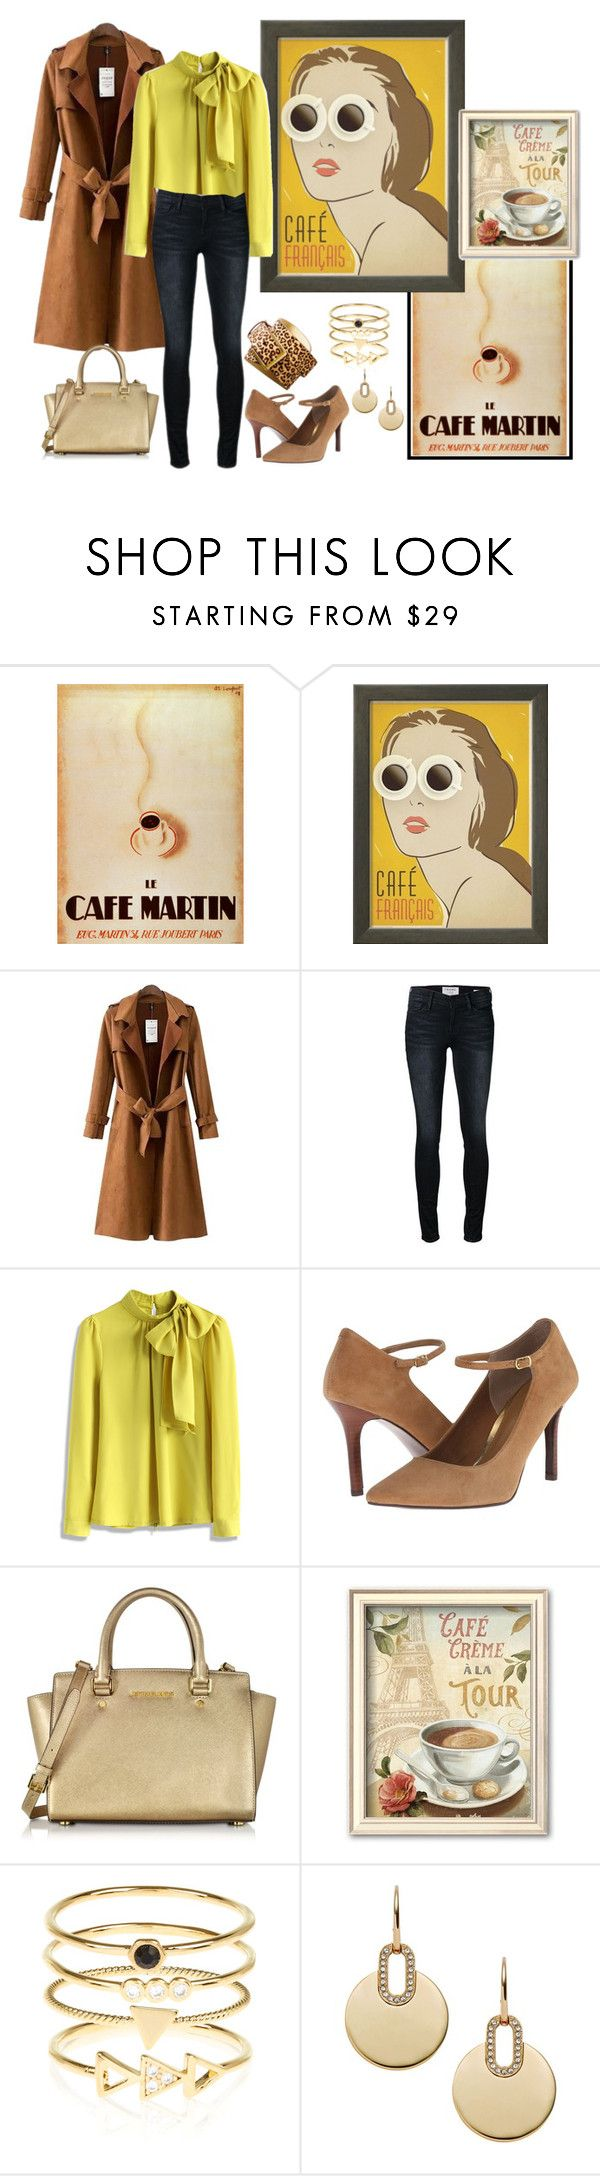 """""""Untitled #92"""" by cpearlz on Polyvore featuring Chicnova Fashion, Frame Denim, CAbi, Chicwish, Lauren Ralph Lauren, Michael Kors, Accessorize, outfit, fab and WhatToWear"""